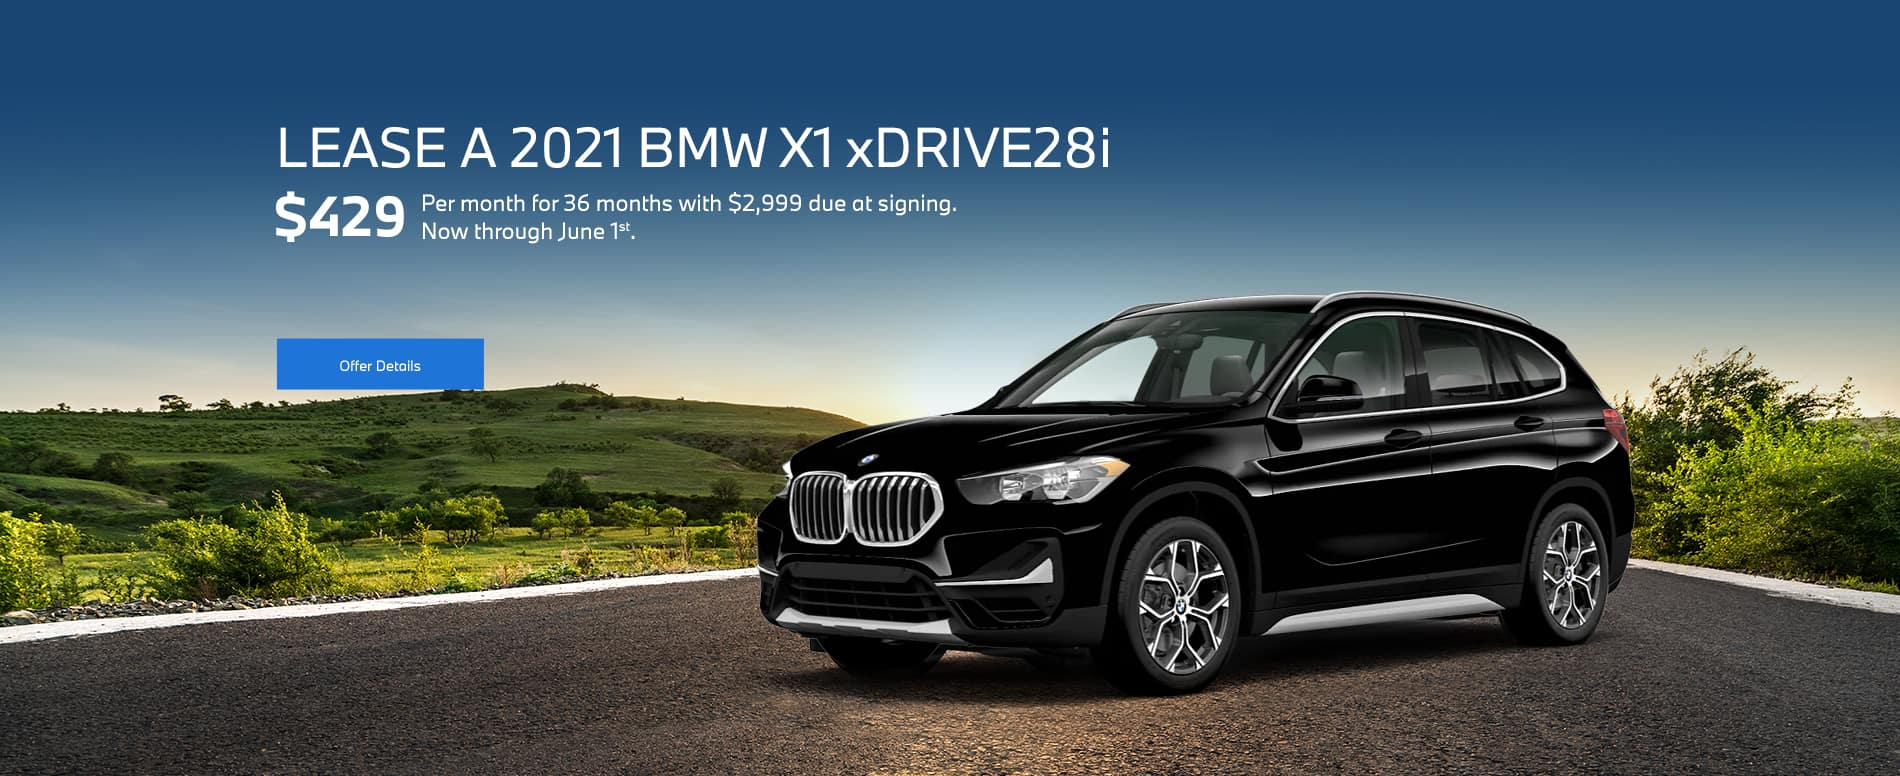 A black new 2021 BMW X1 leasing for $429/month for 36 months with $2,999 due at signing